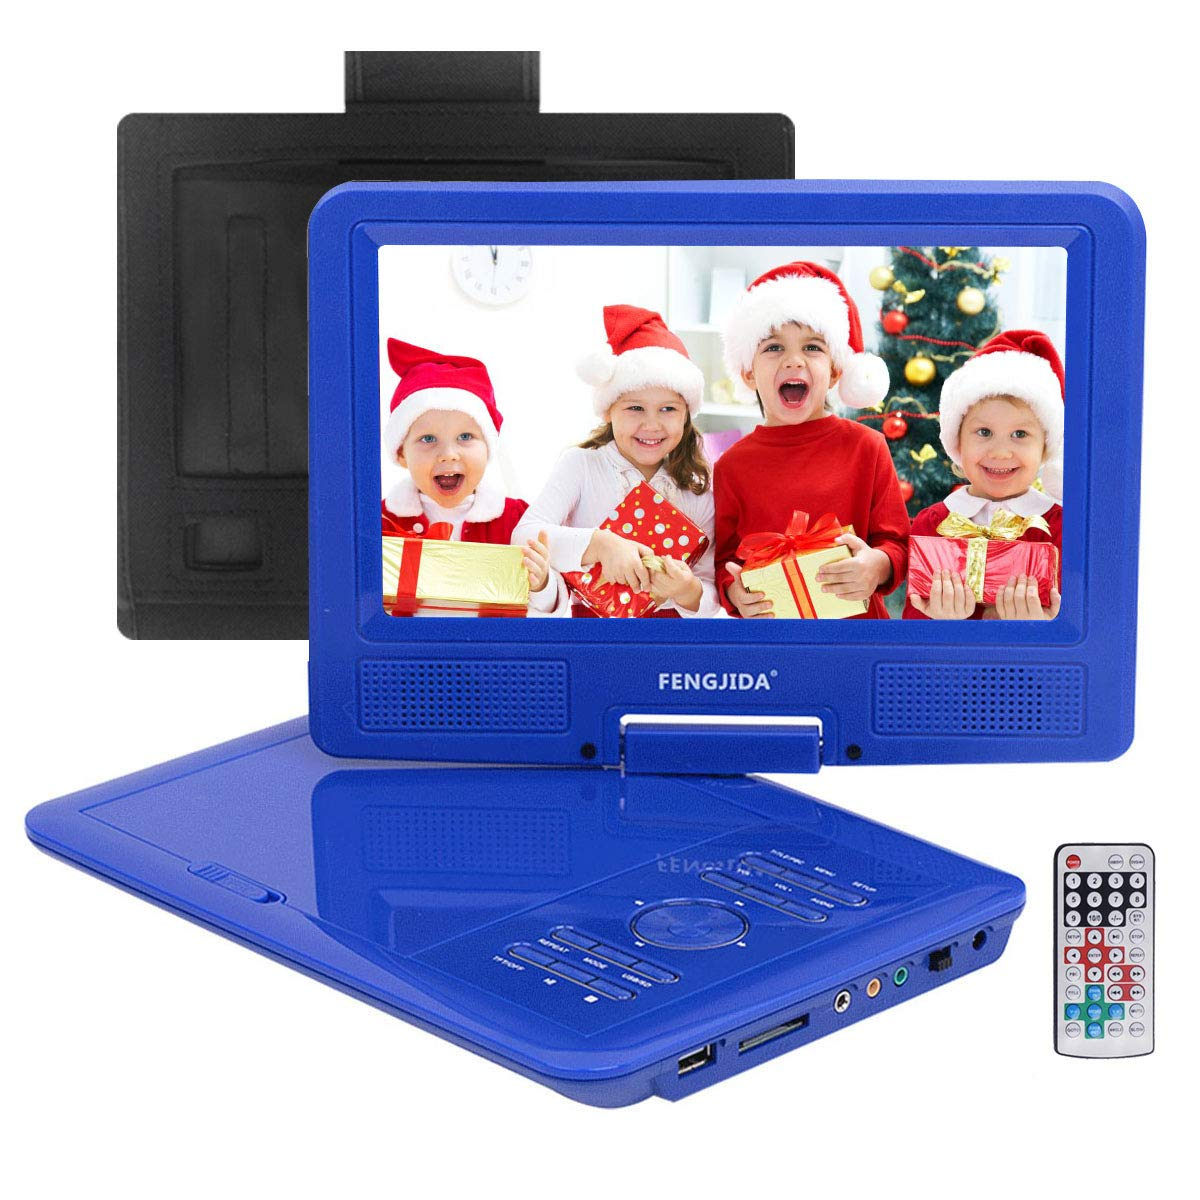 FENGJIDA 9.5'' Portable DVD Player, Car DVD Player with Headrest Mount, Swivel Screen, Built-in Rechargeable Battery, Remote Control, 5.9 ft Car Charger SD Card Slot and USB Port- Blue